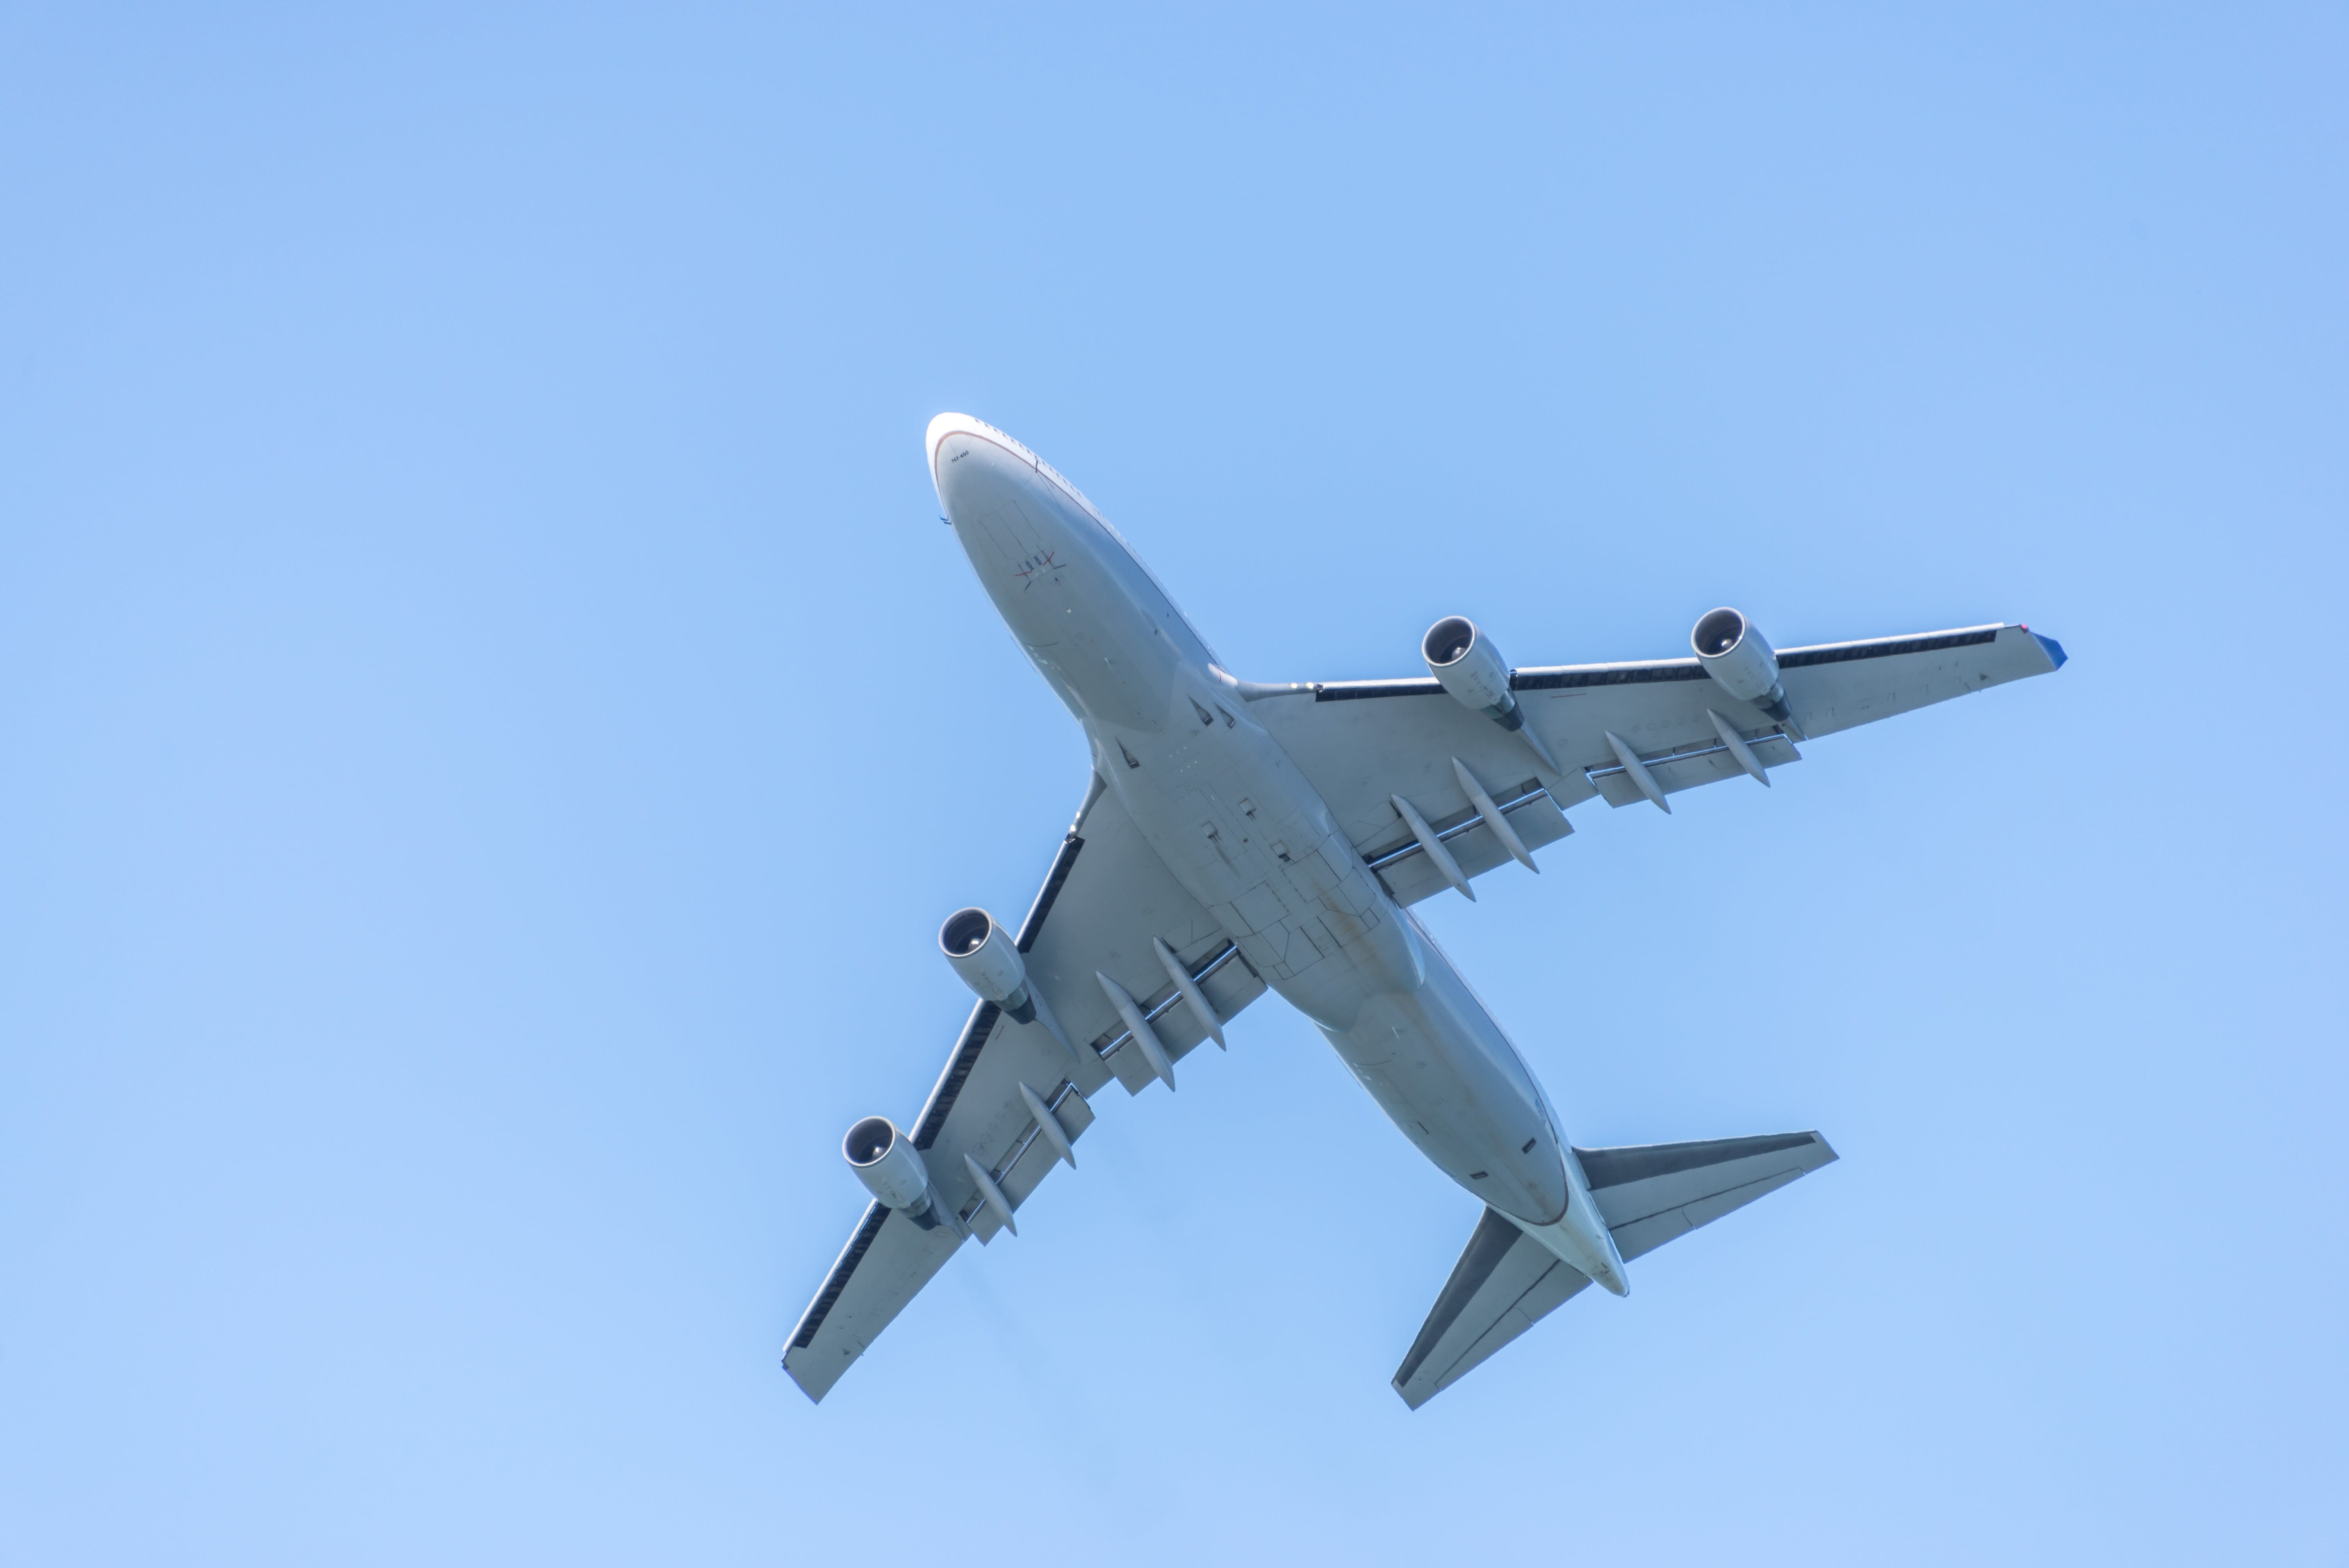 Free stock photo of airline, airplane, airplane flying, big airliner from below